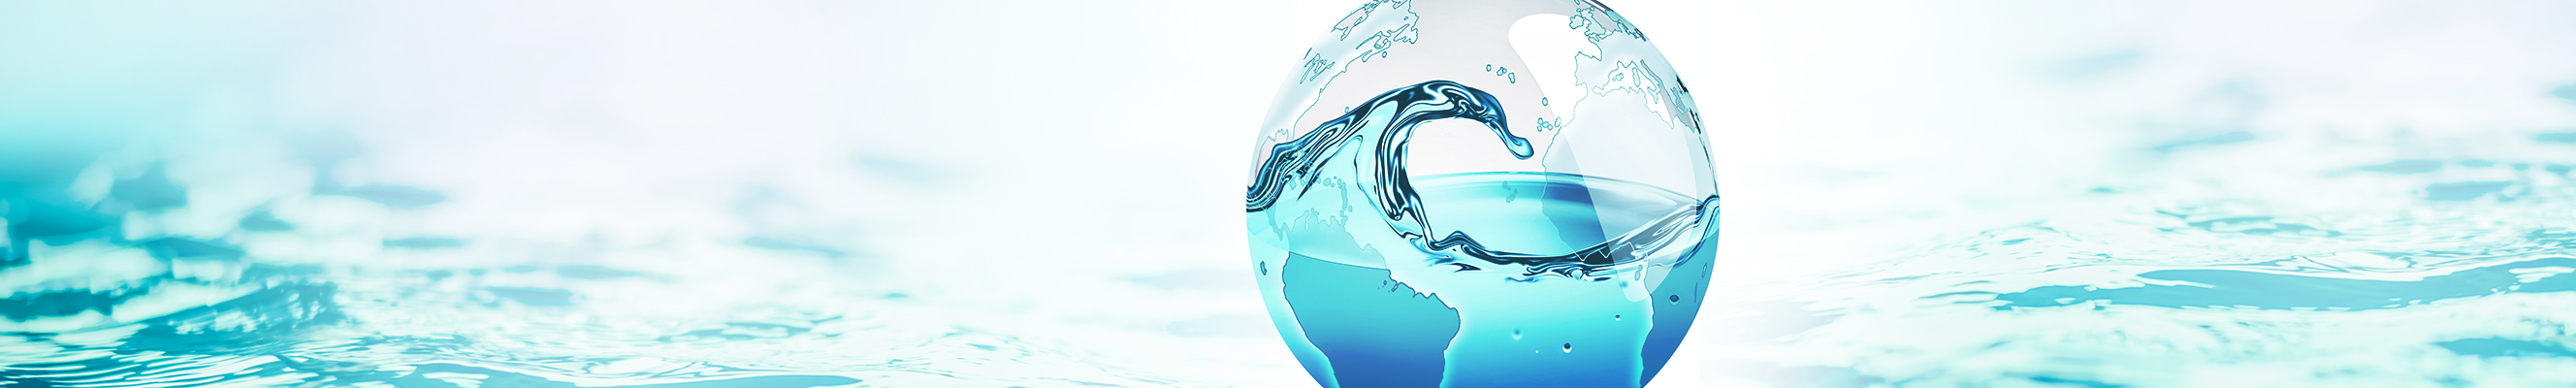 Water quality conservation